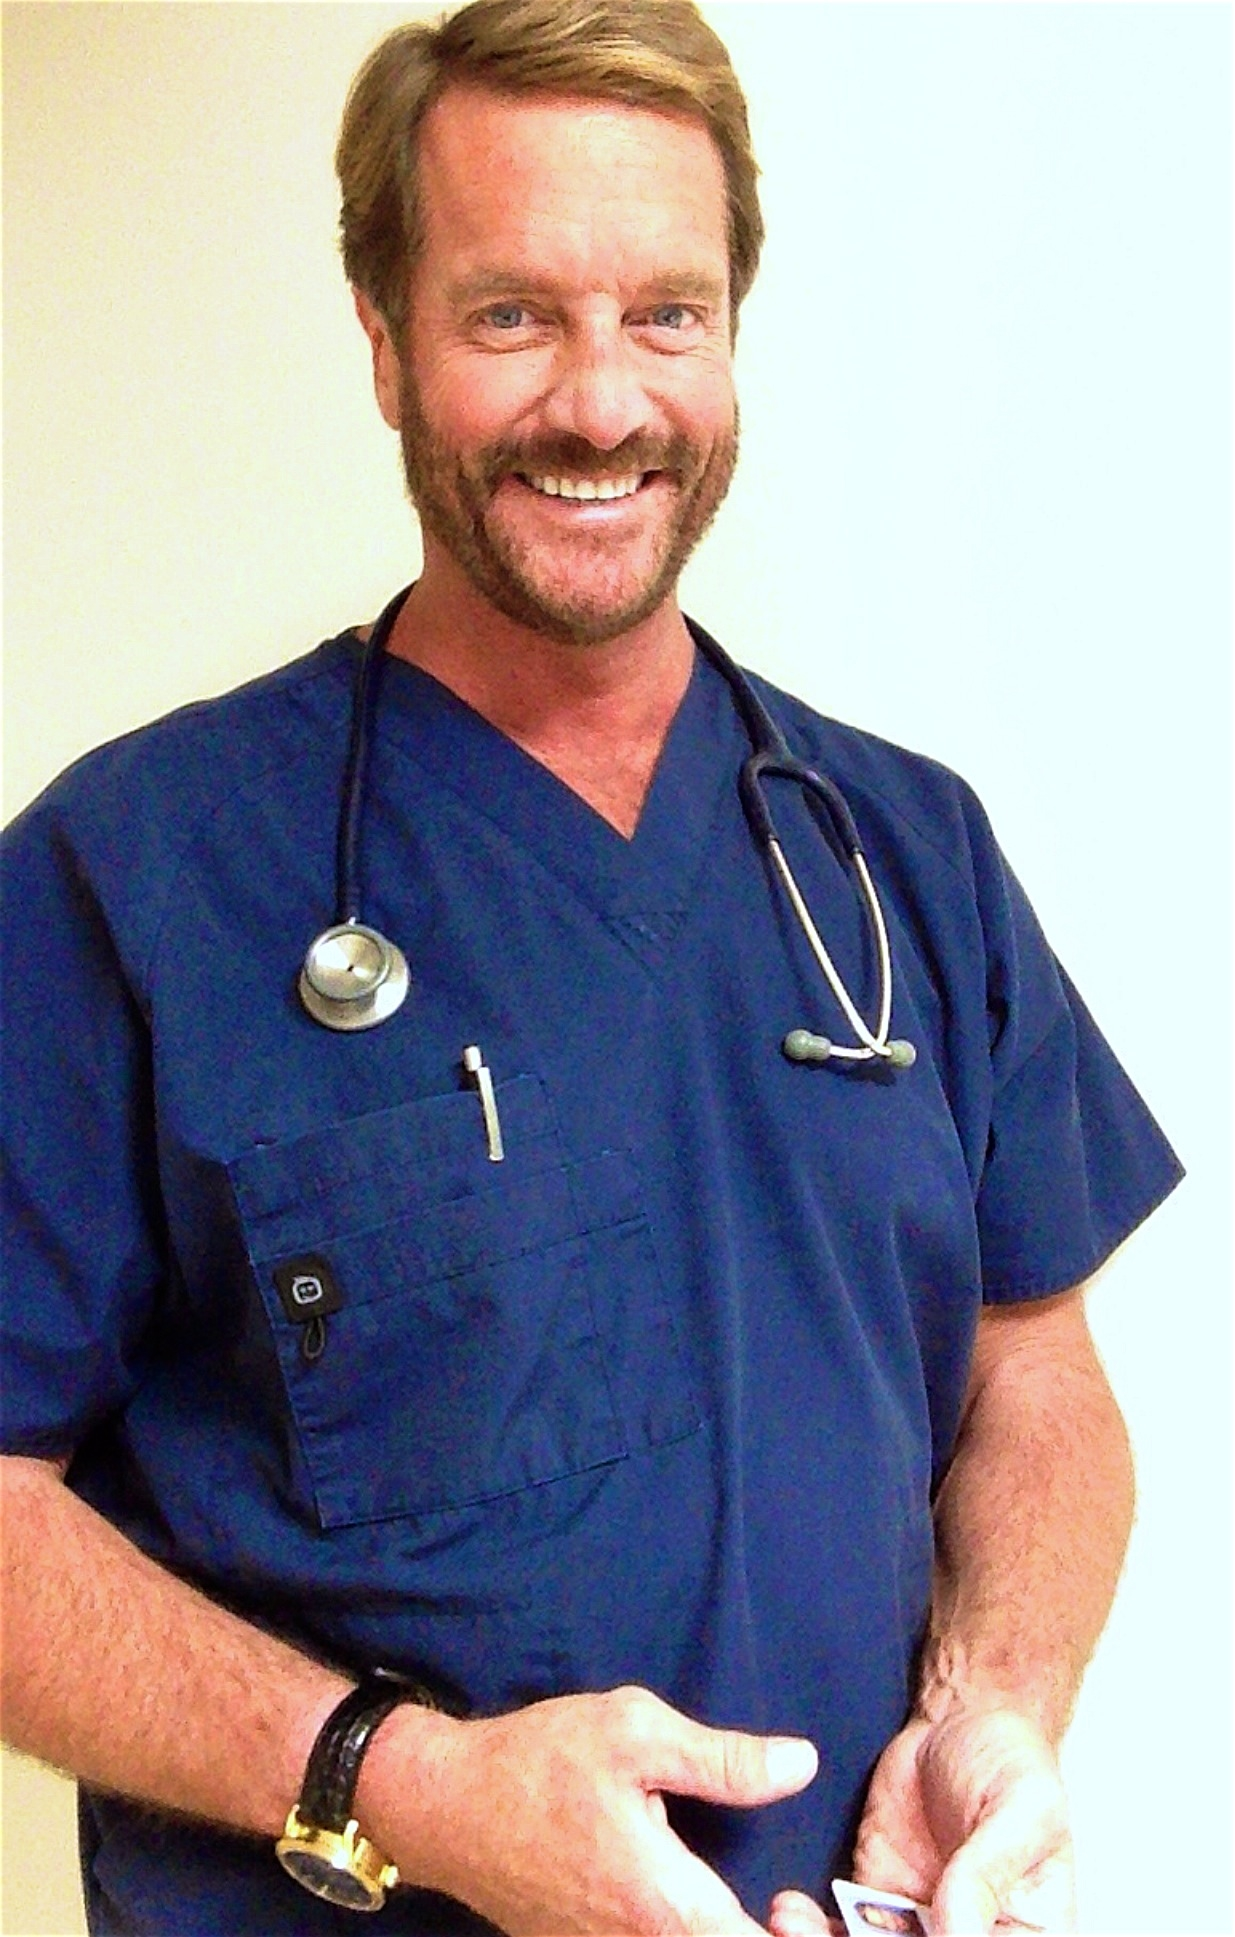 Dr. Wade Grindle, MD